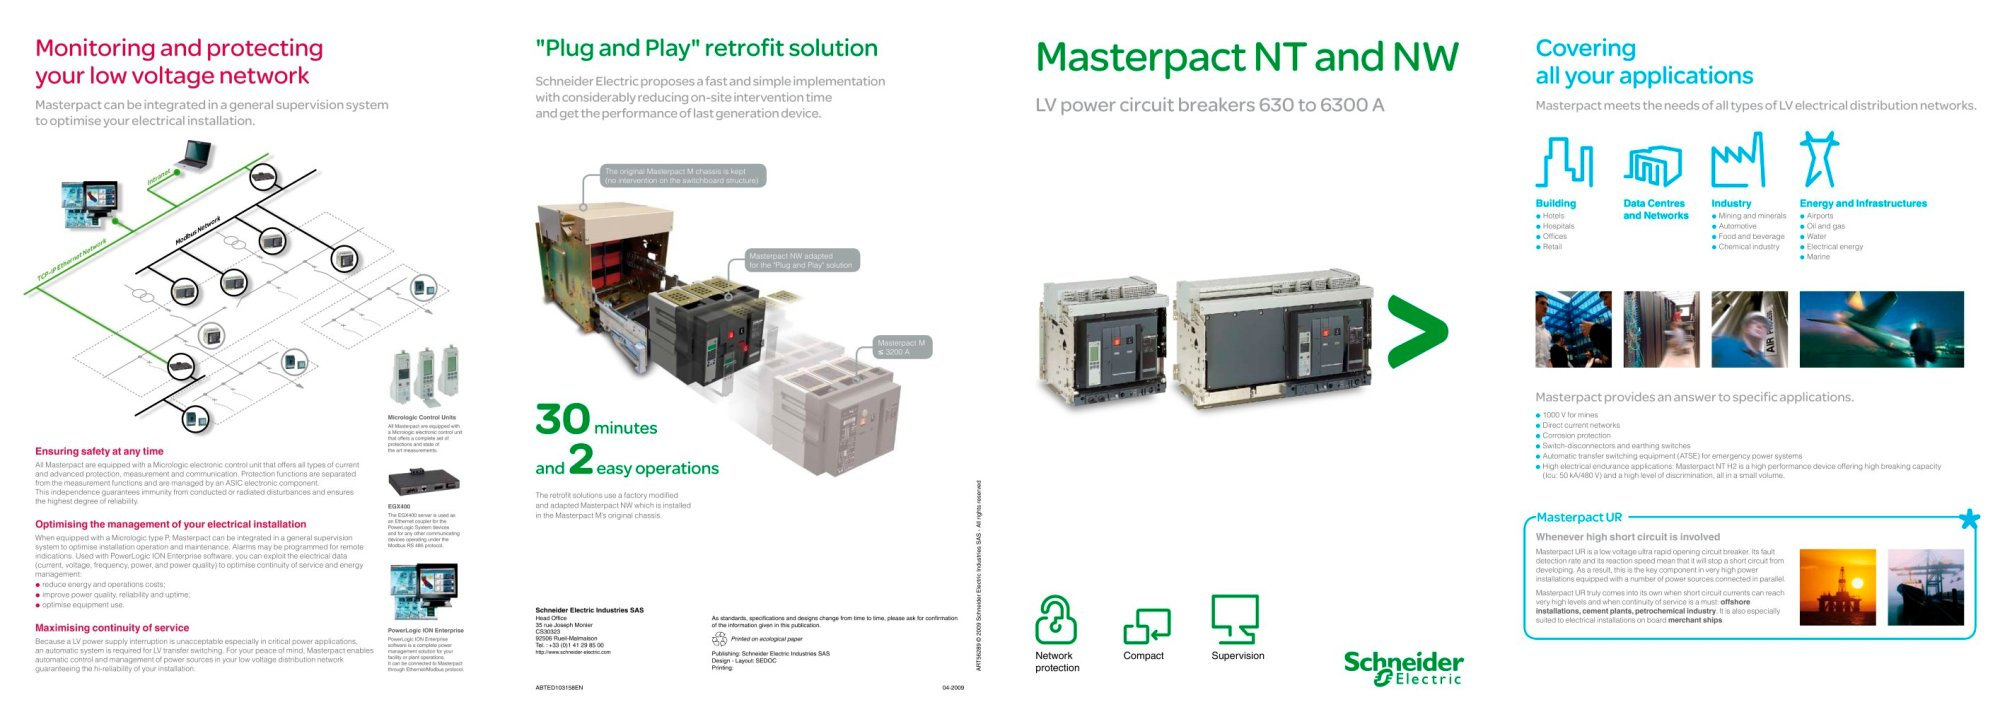 hight resolution of masterpact nt and nw lv power circuit breakers 630 to 6300 a